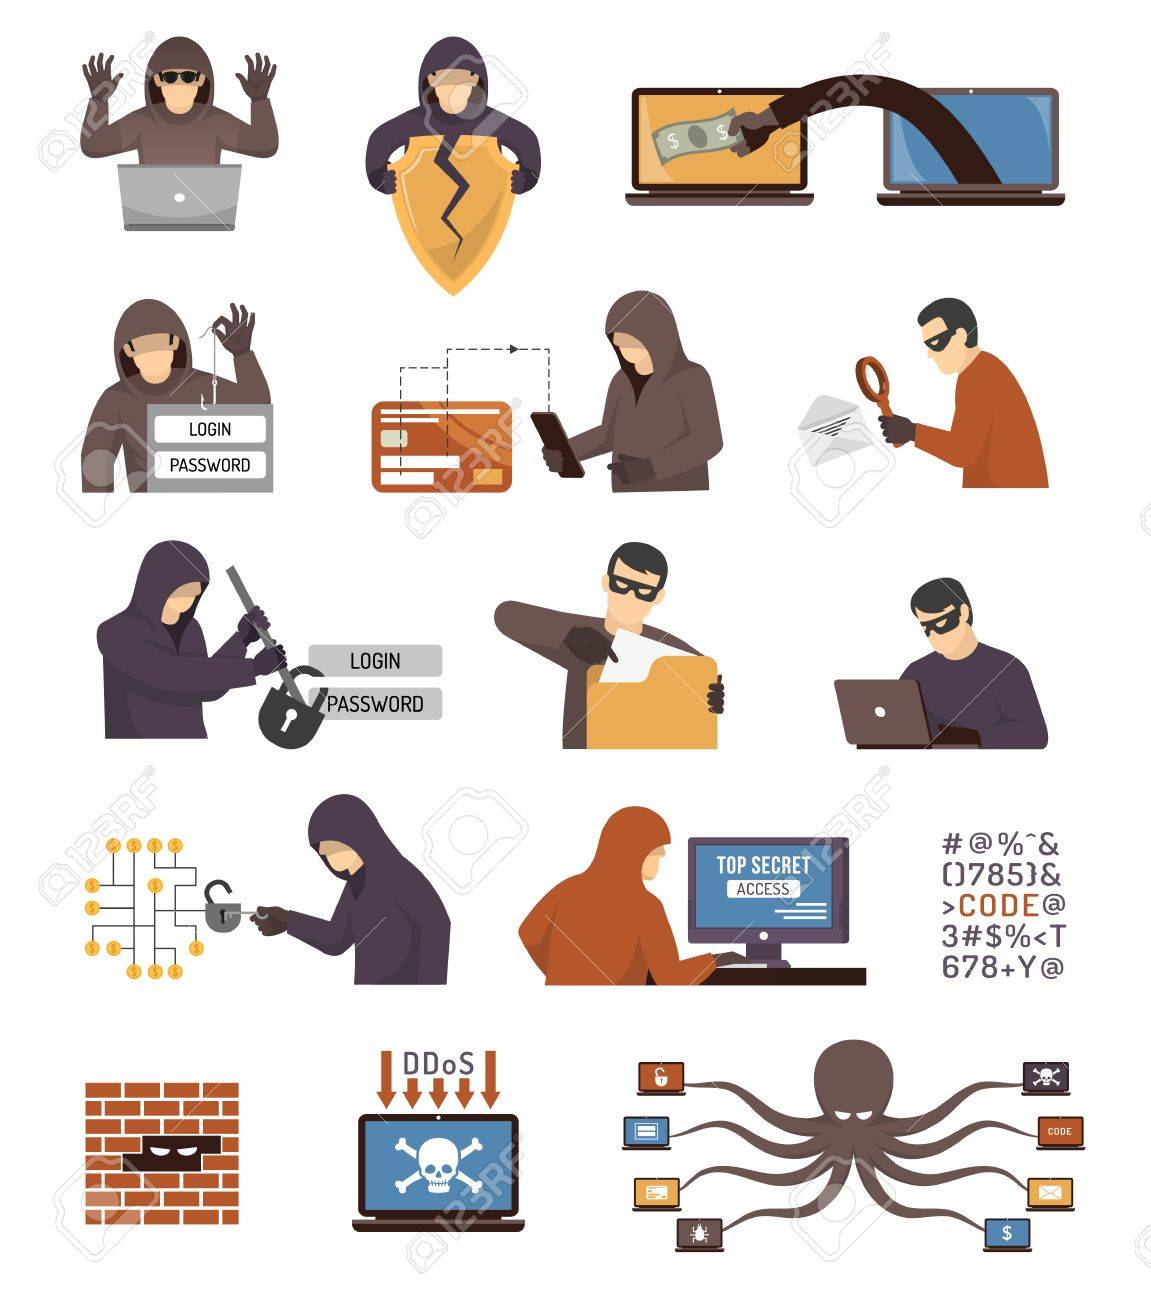 Internet security hackers tools tricks and schemes flat icons